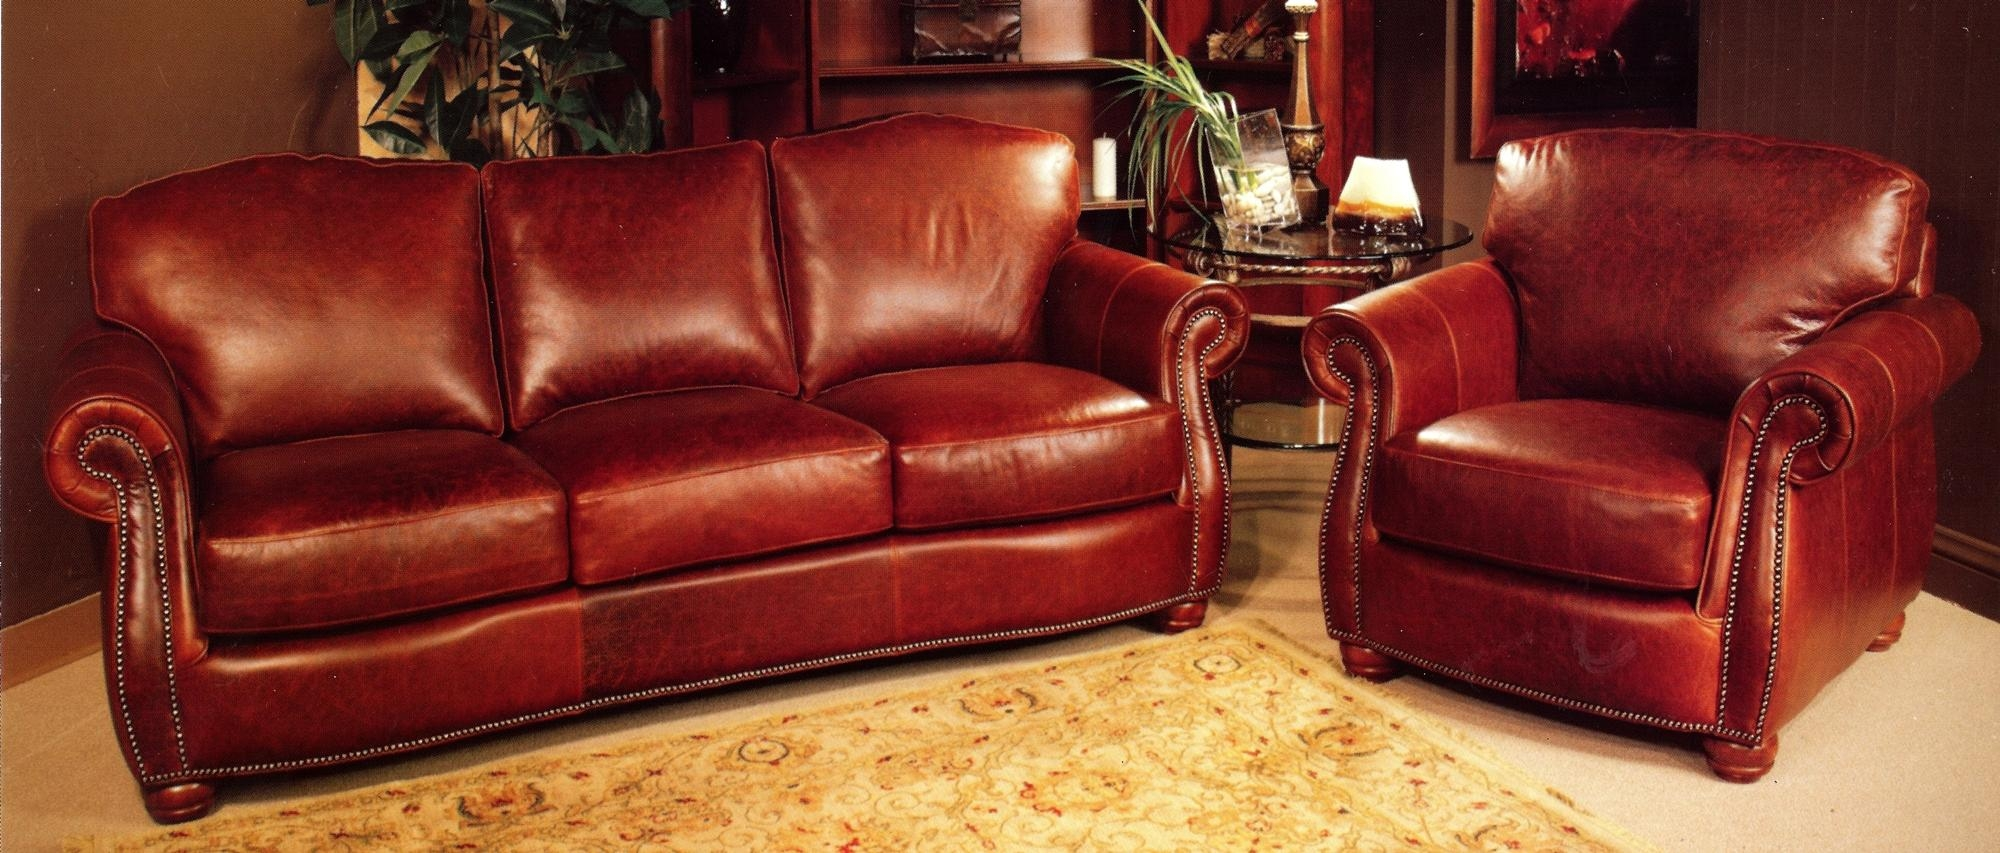 Rustic Sofas And Chairs | Tehranmix Decoration In Red Sofas And Chairs (Image 17 of 20)